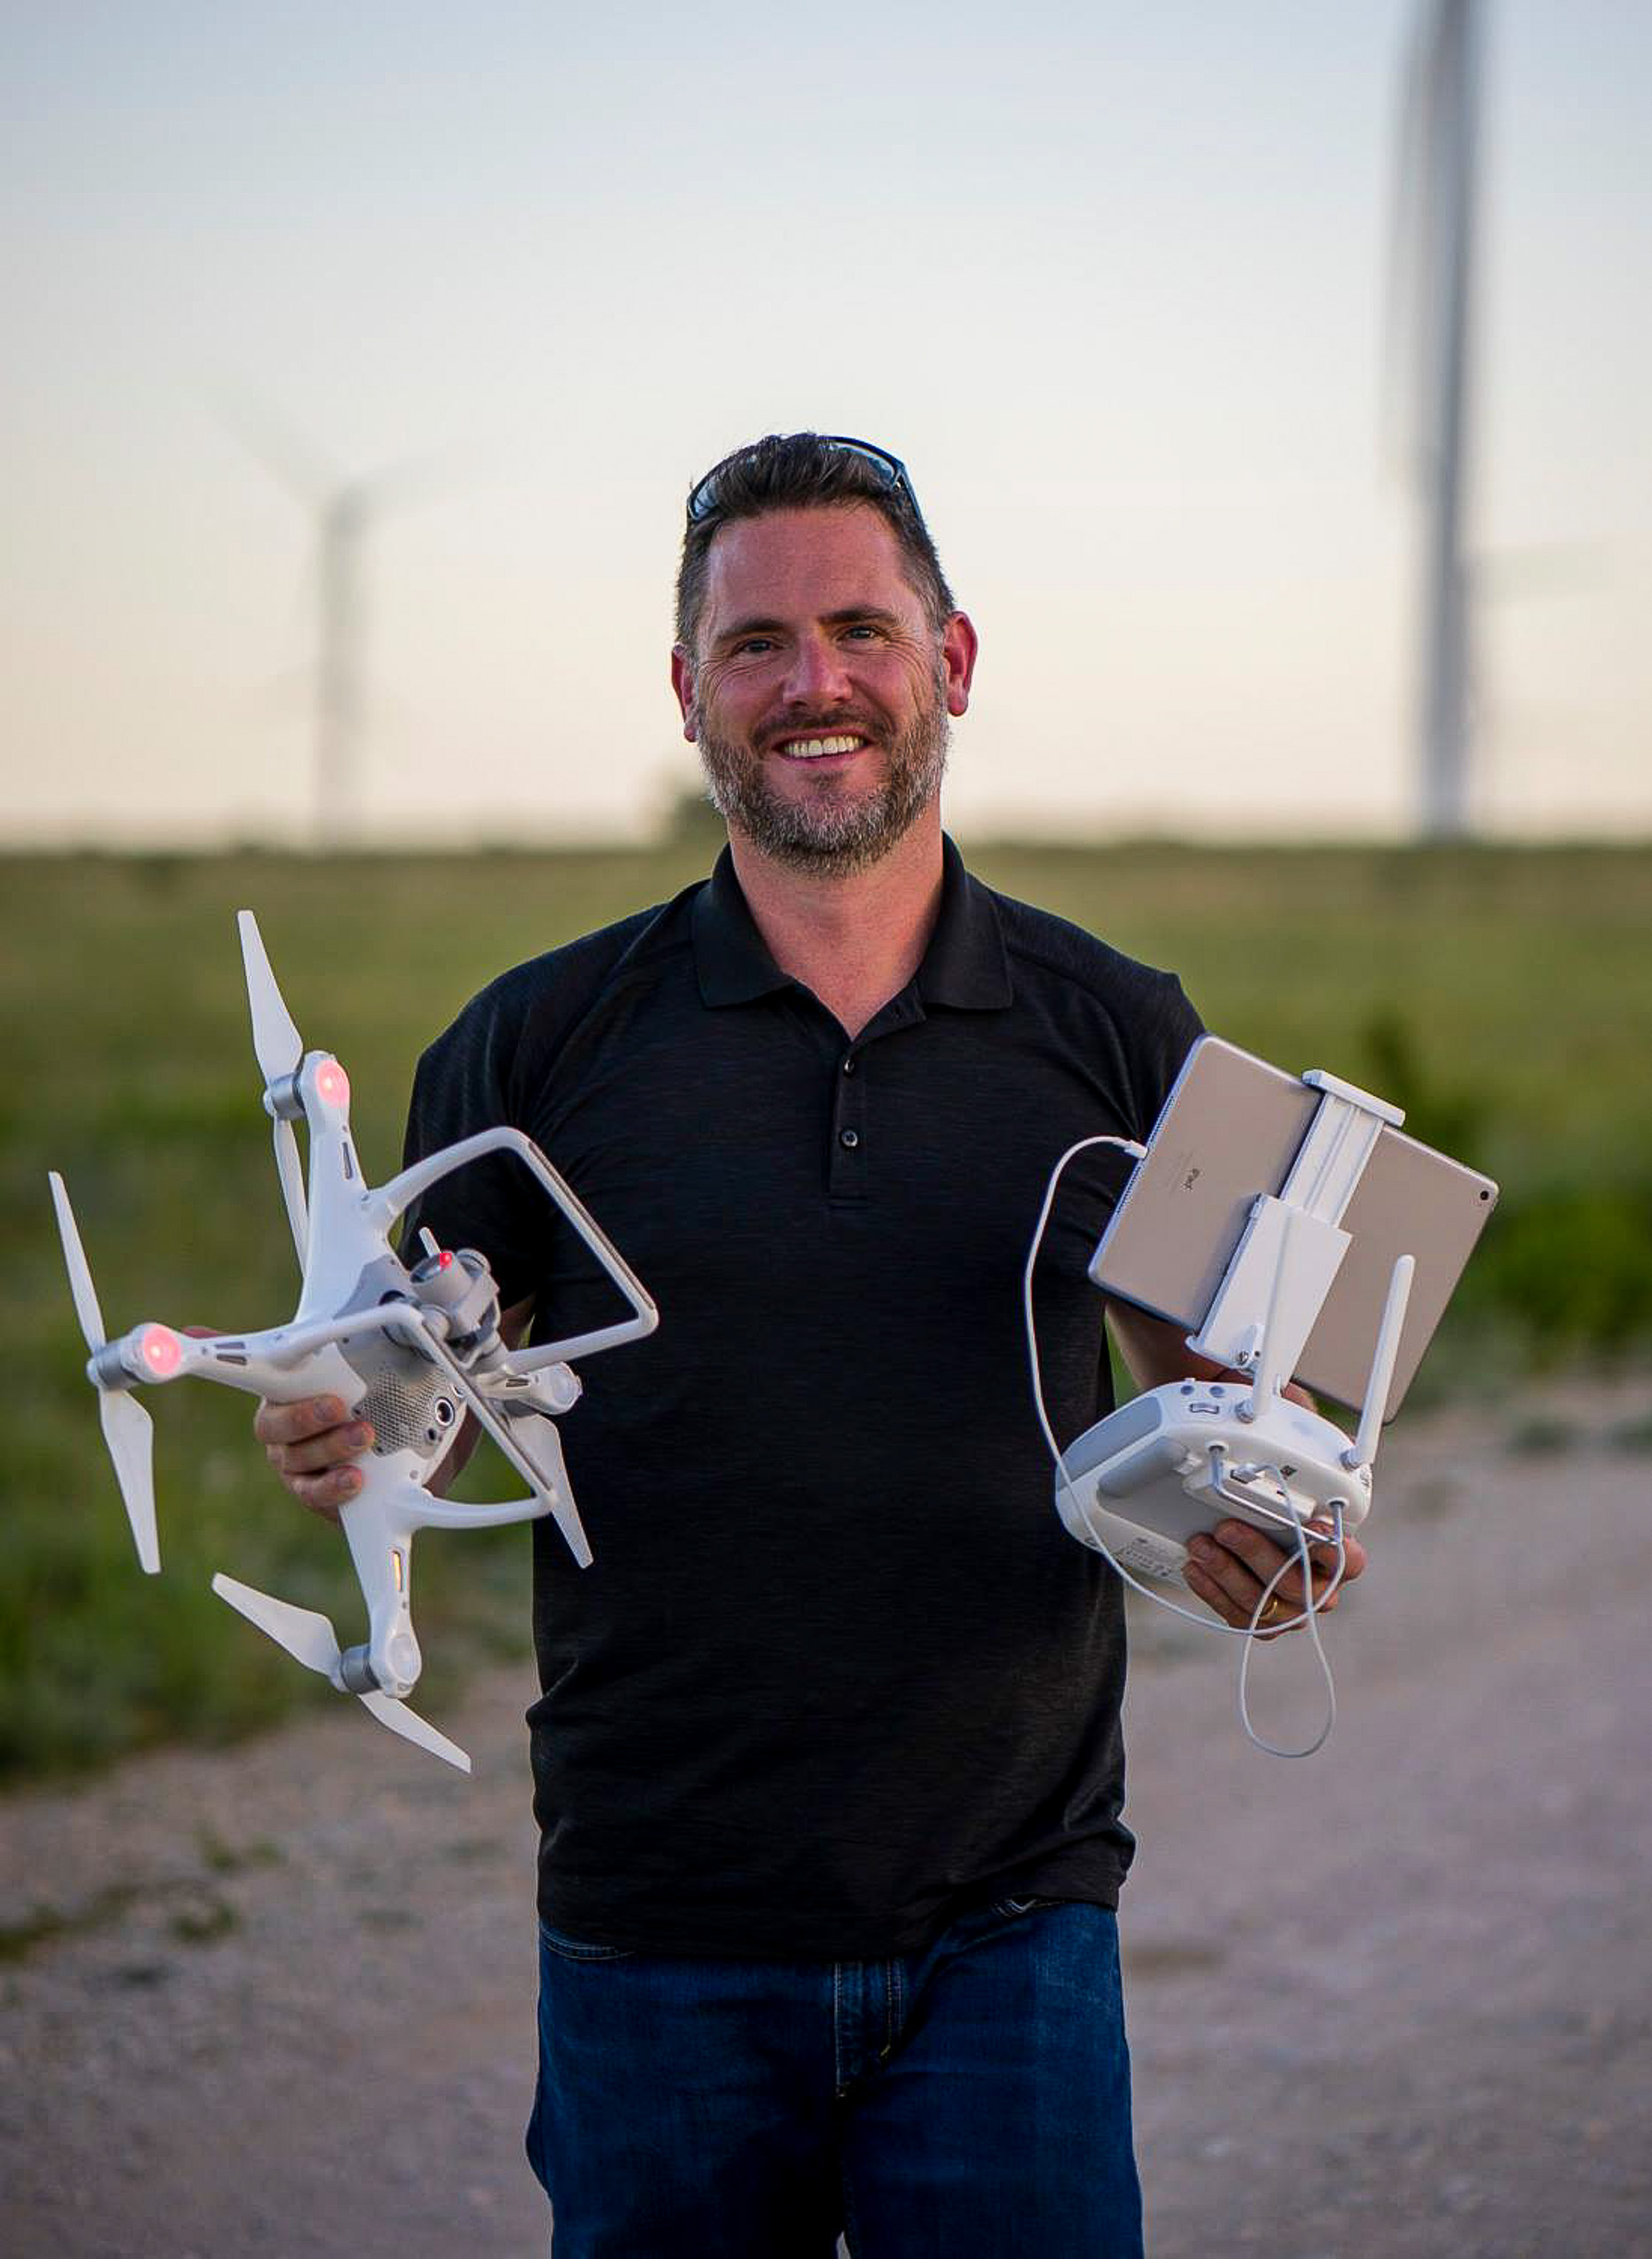 Wind-Energy-Drone-Photography-Ed-Collier